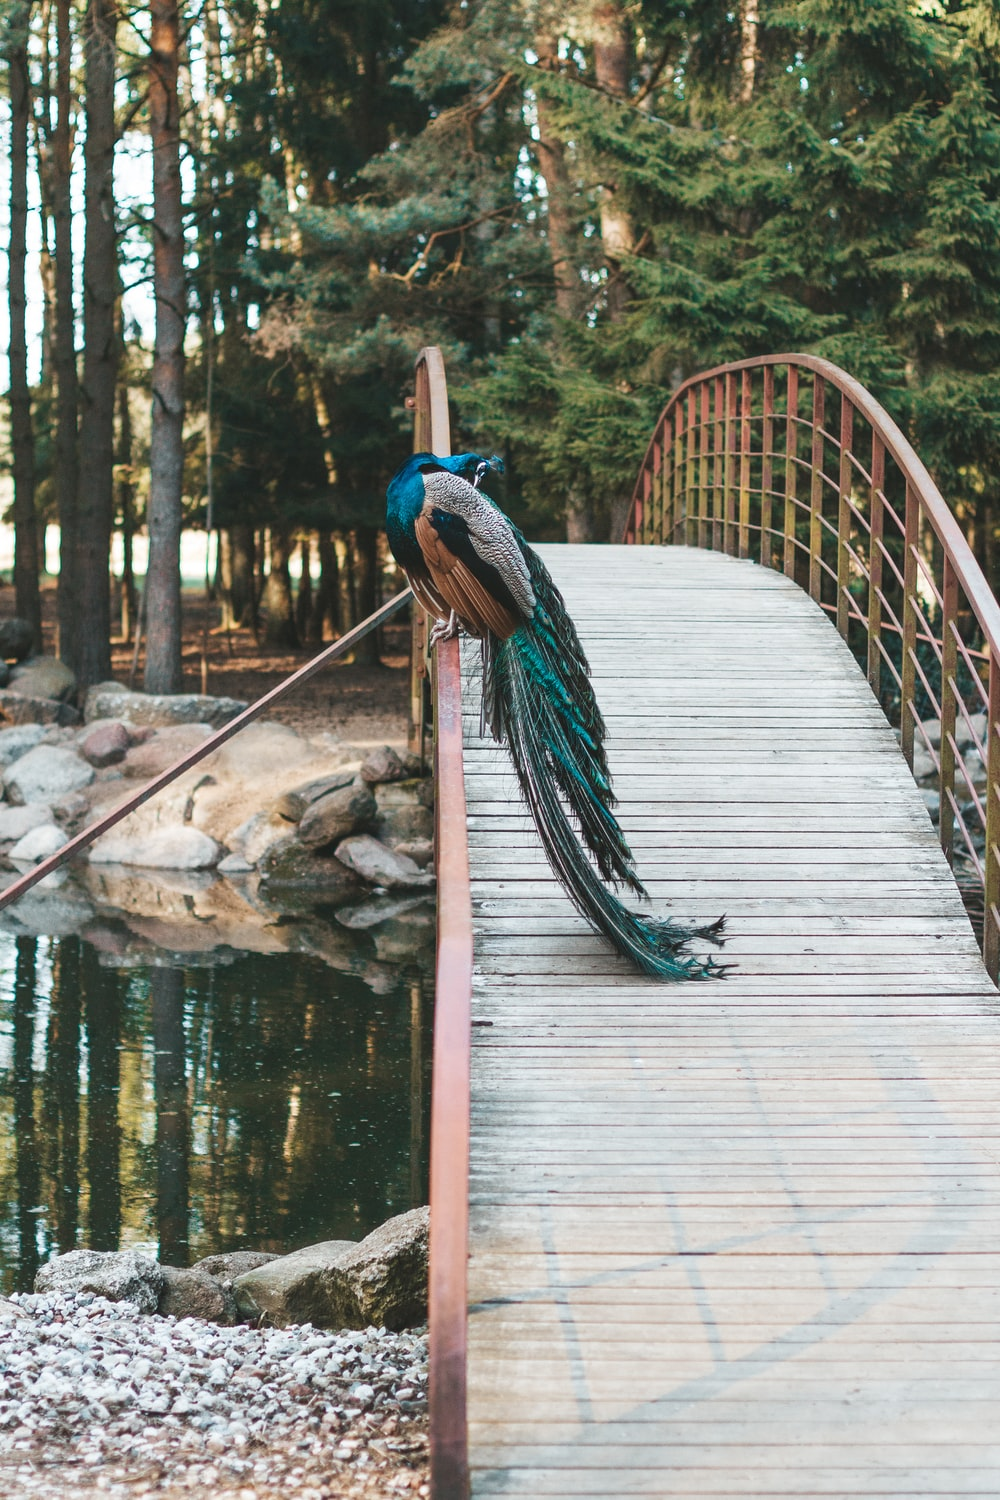 peacock perched on foot bridge